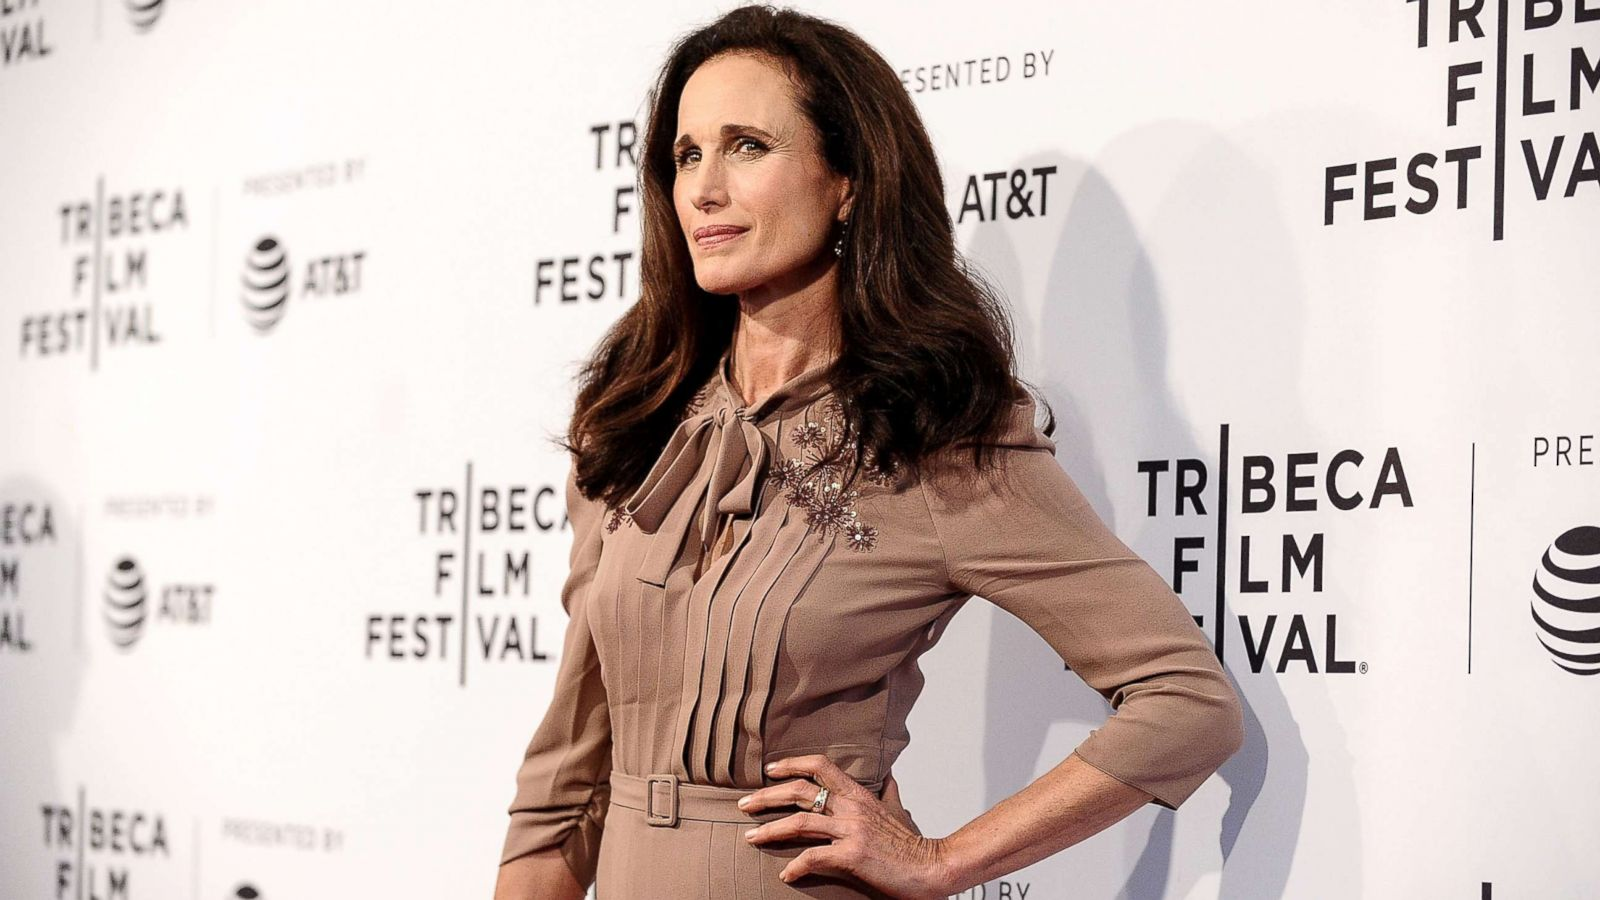 Fotos Andie MacDowell nudes (47 foto and video), Tits, Paparazzi, Boobs, cleavage 2017